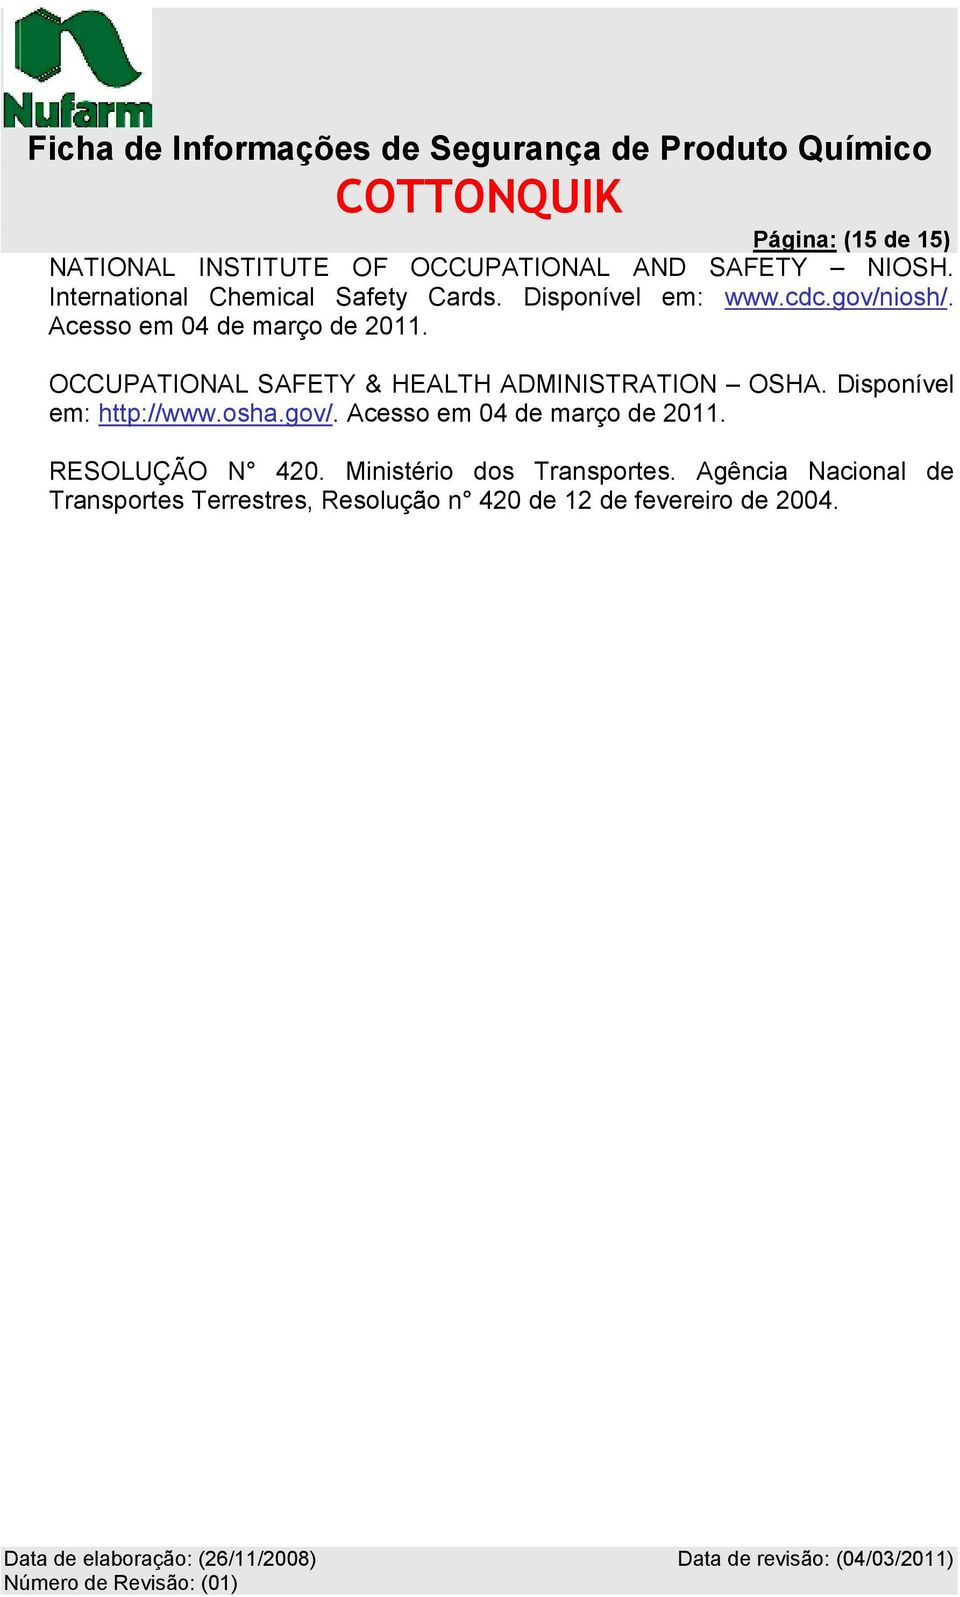 OCCUPATIONAL SAFETY & HEALTH ADMINISTRATION OSHA. Disponível em: http://www.osha.gov/.